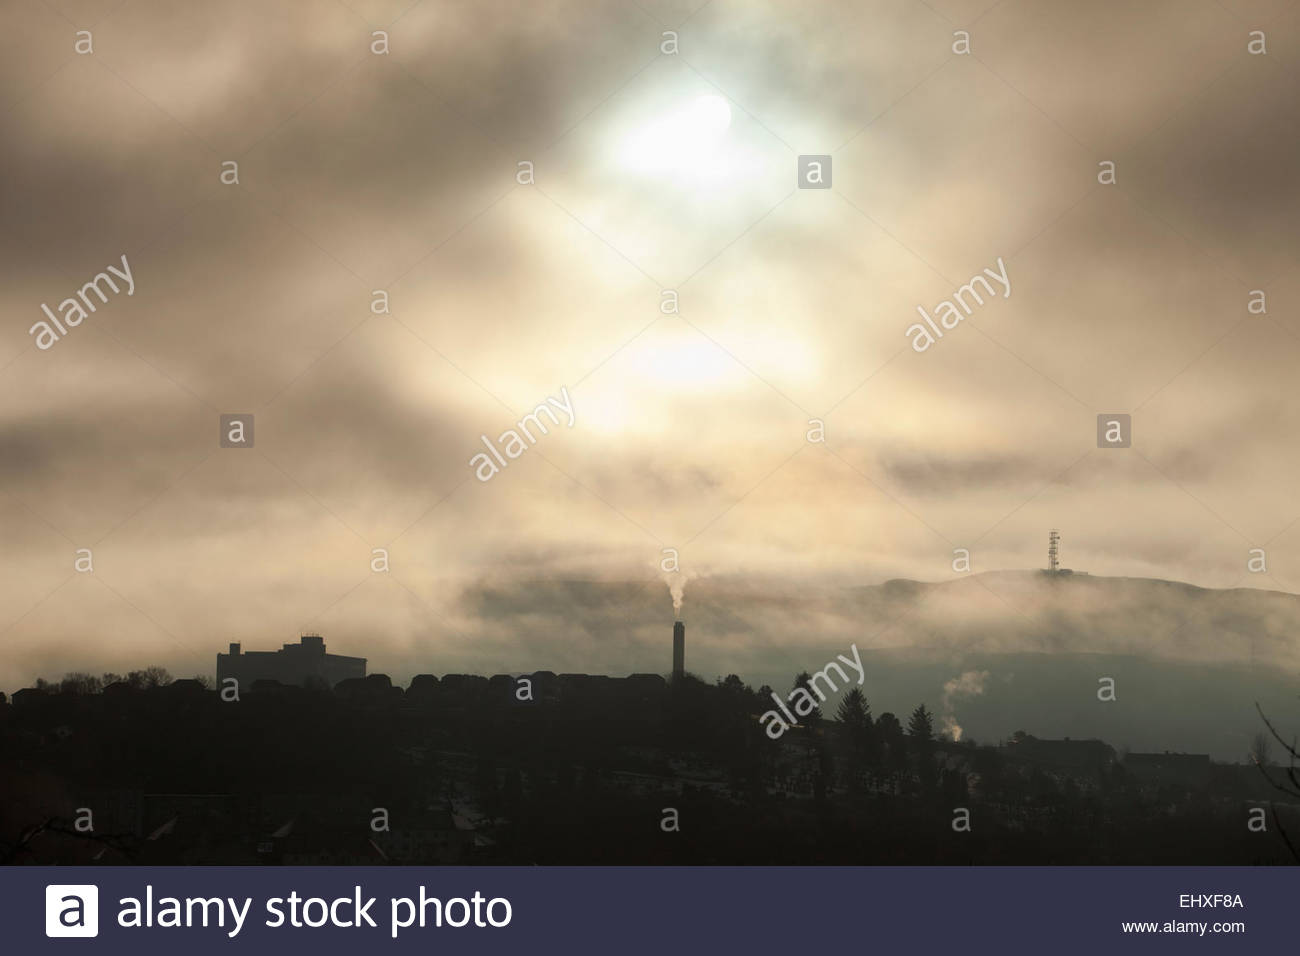 Silhouette smog pollution town chimney smoke - Stock Image